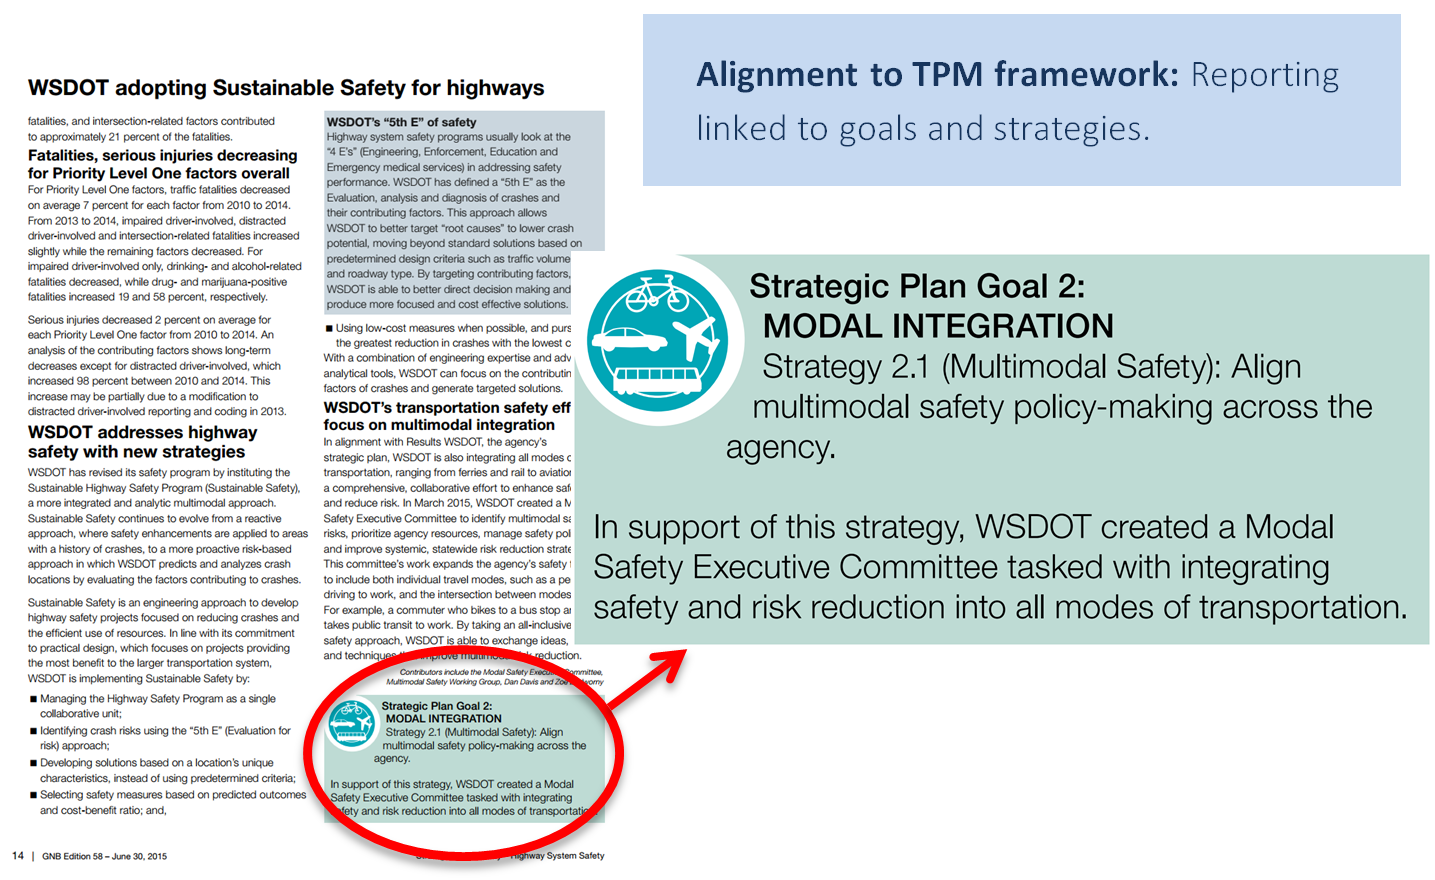 Alignment to TPM framework: reporting linked to goals and strategies. Image of Gray Notebook page with callout for Strategic Plan Goal 2: Modal Integration. Strategy 2.1: align multimodal safety policy-making across the agency.